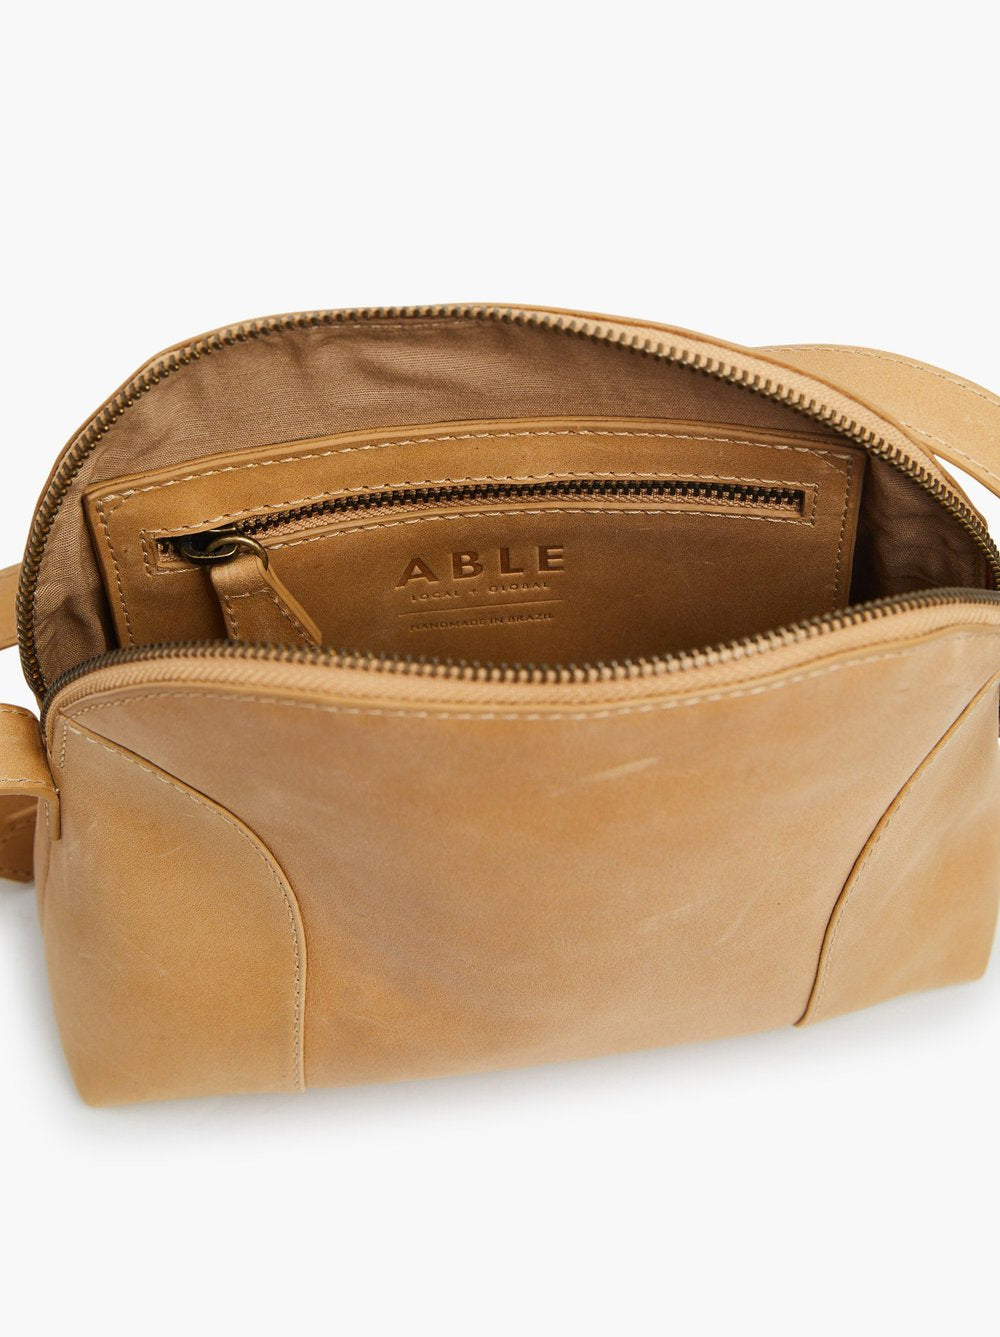 Unzipped view of inside the fawn dome shaped bag revealing the interior zipper pocket and the ABLE logo